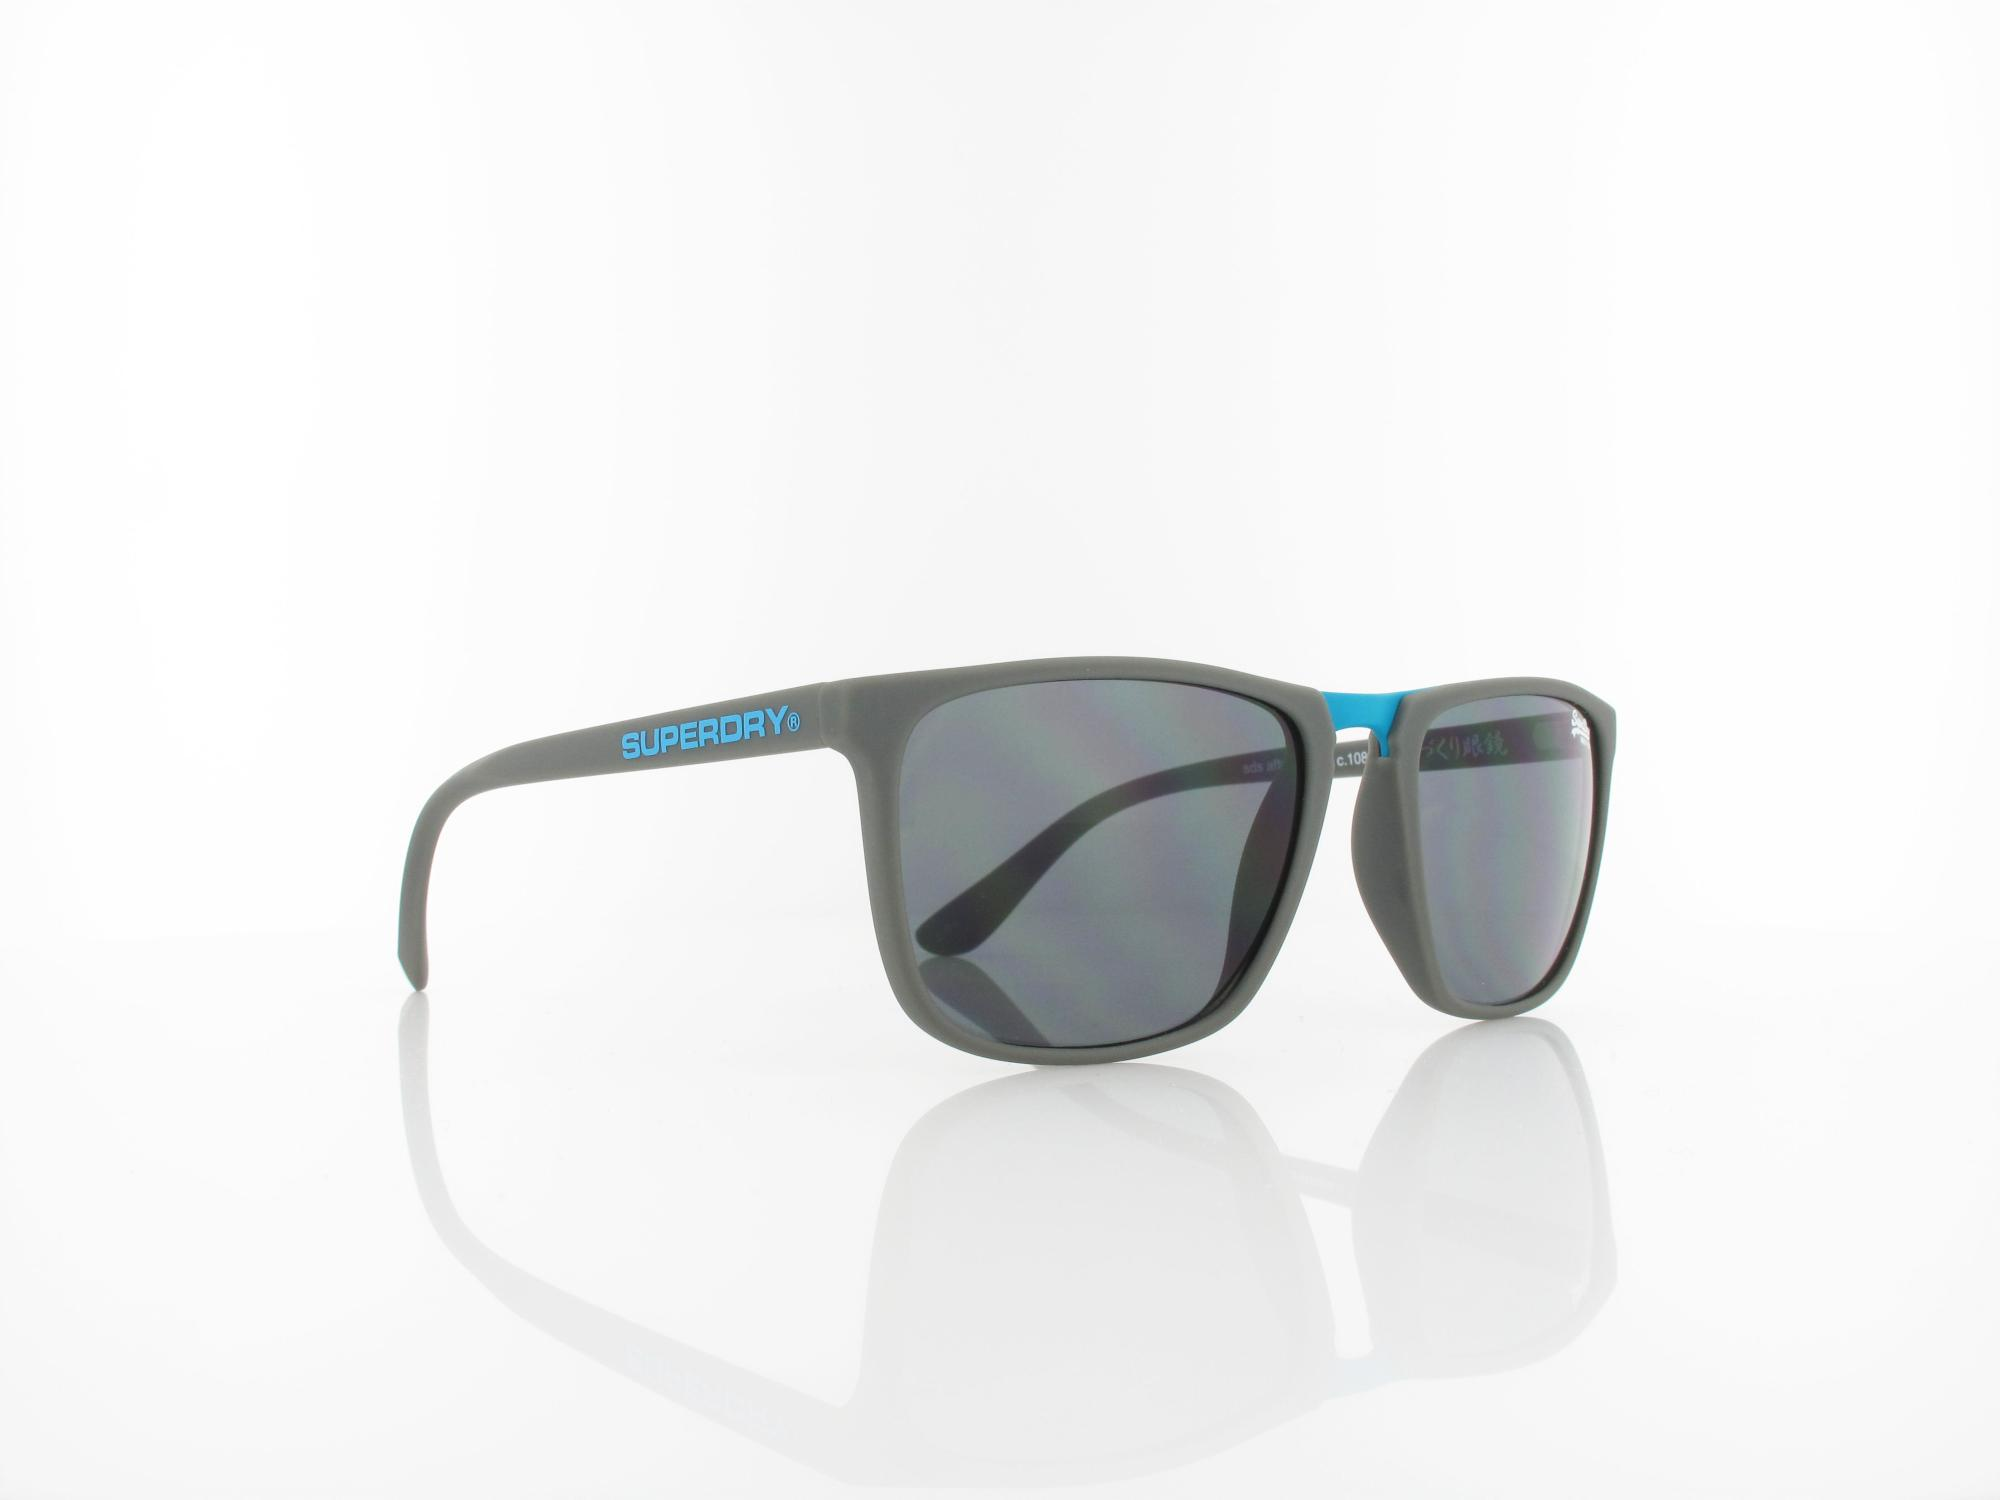 Superdry | Aftershock 108 53 | rubberised grey blue / solid smoke